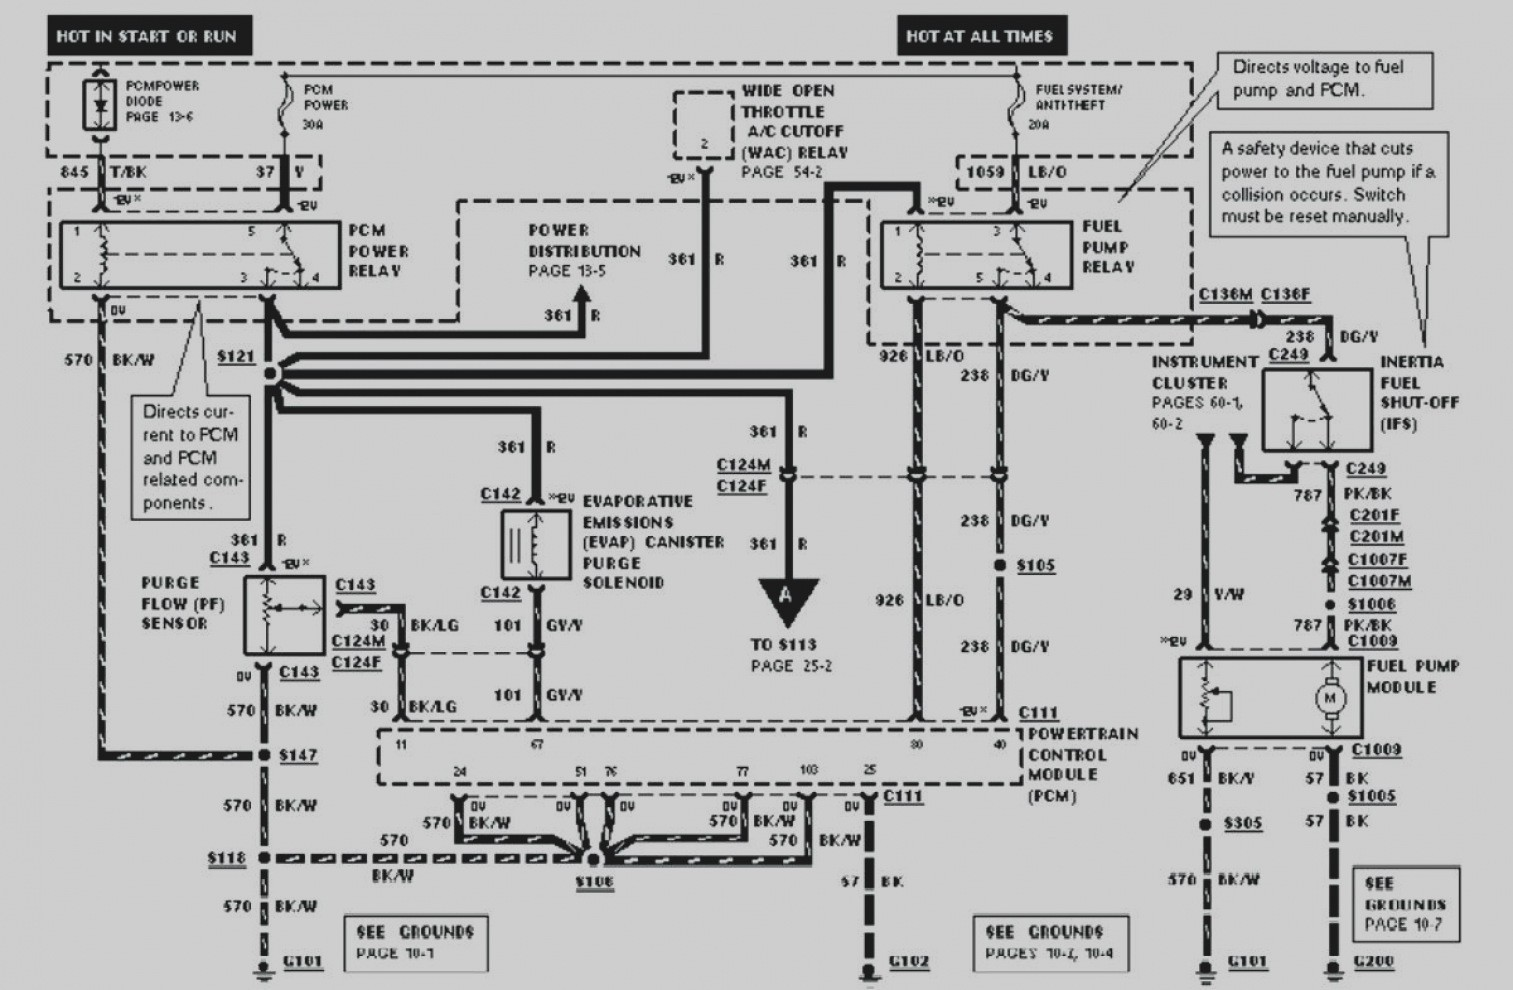 1997 Ford Fuse Box Diagram | Wiring Liry Harley Flhs Wolo Horn Wiring Diagram on